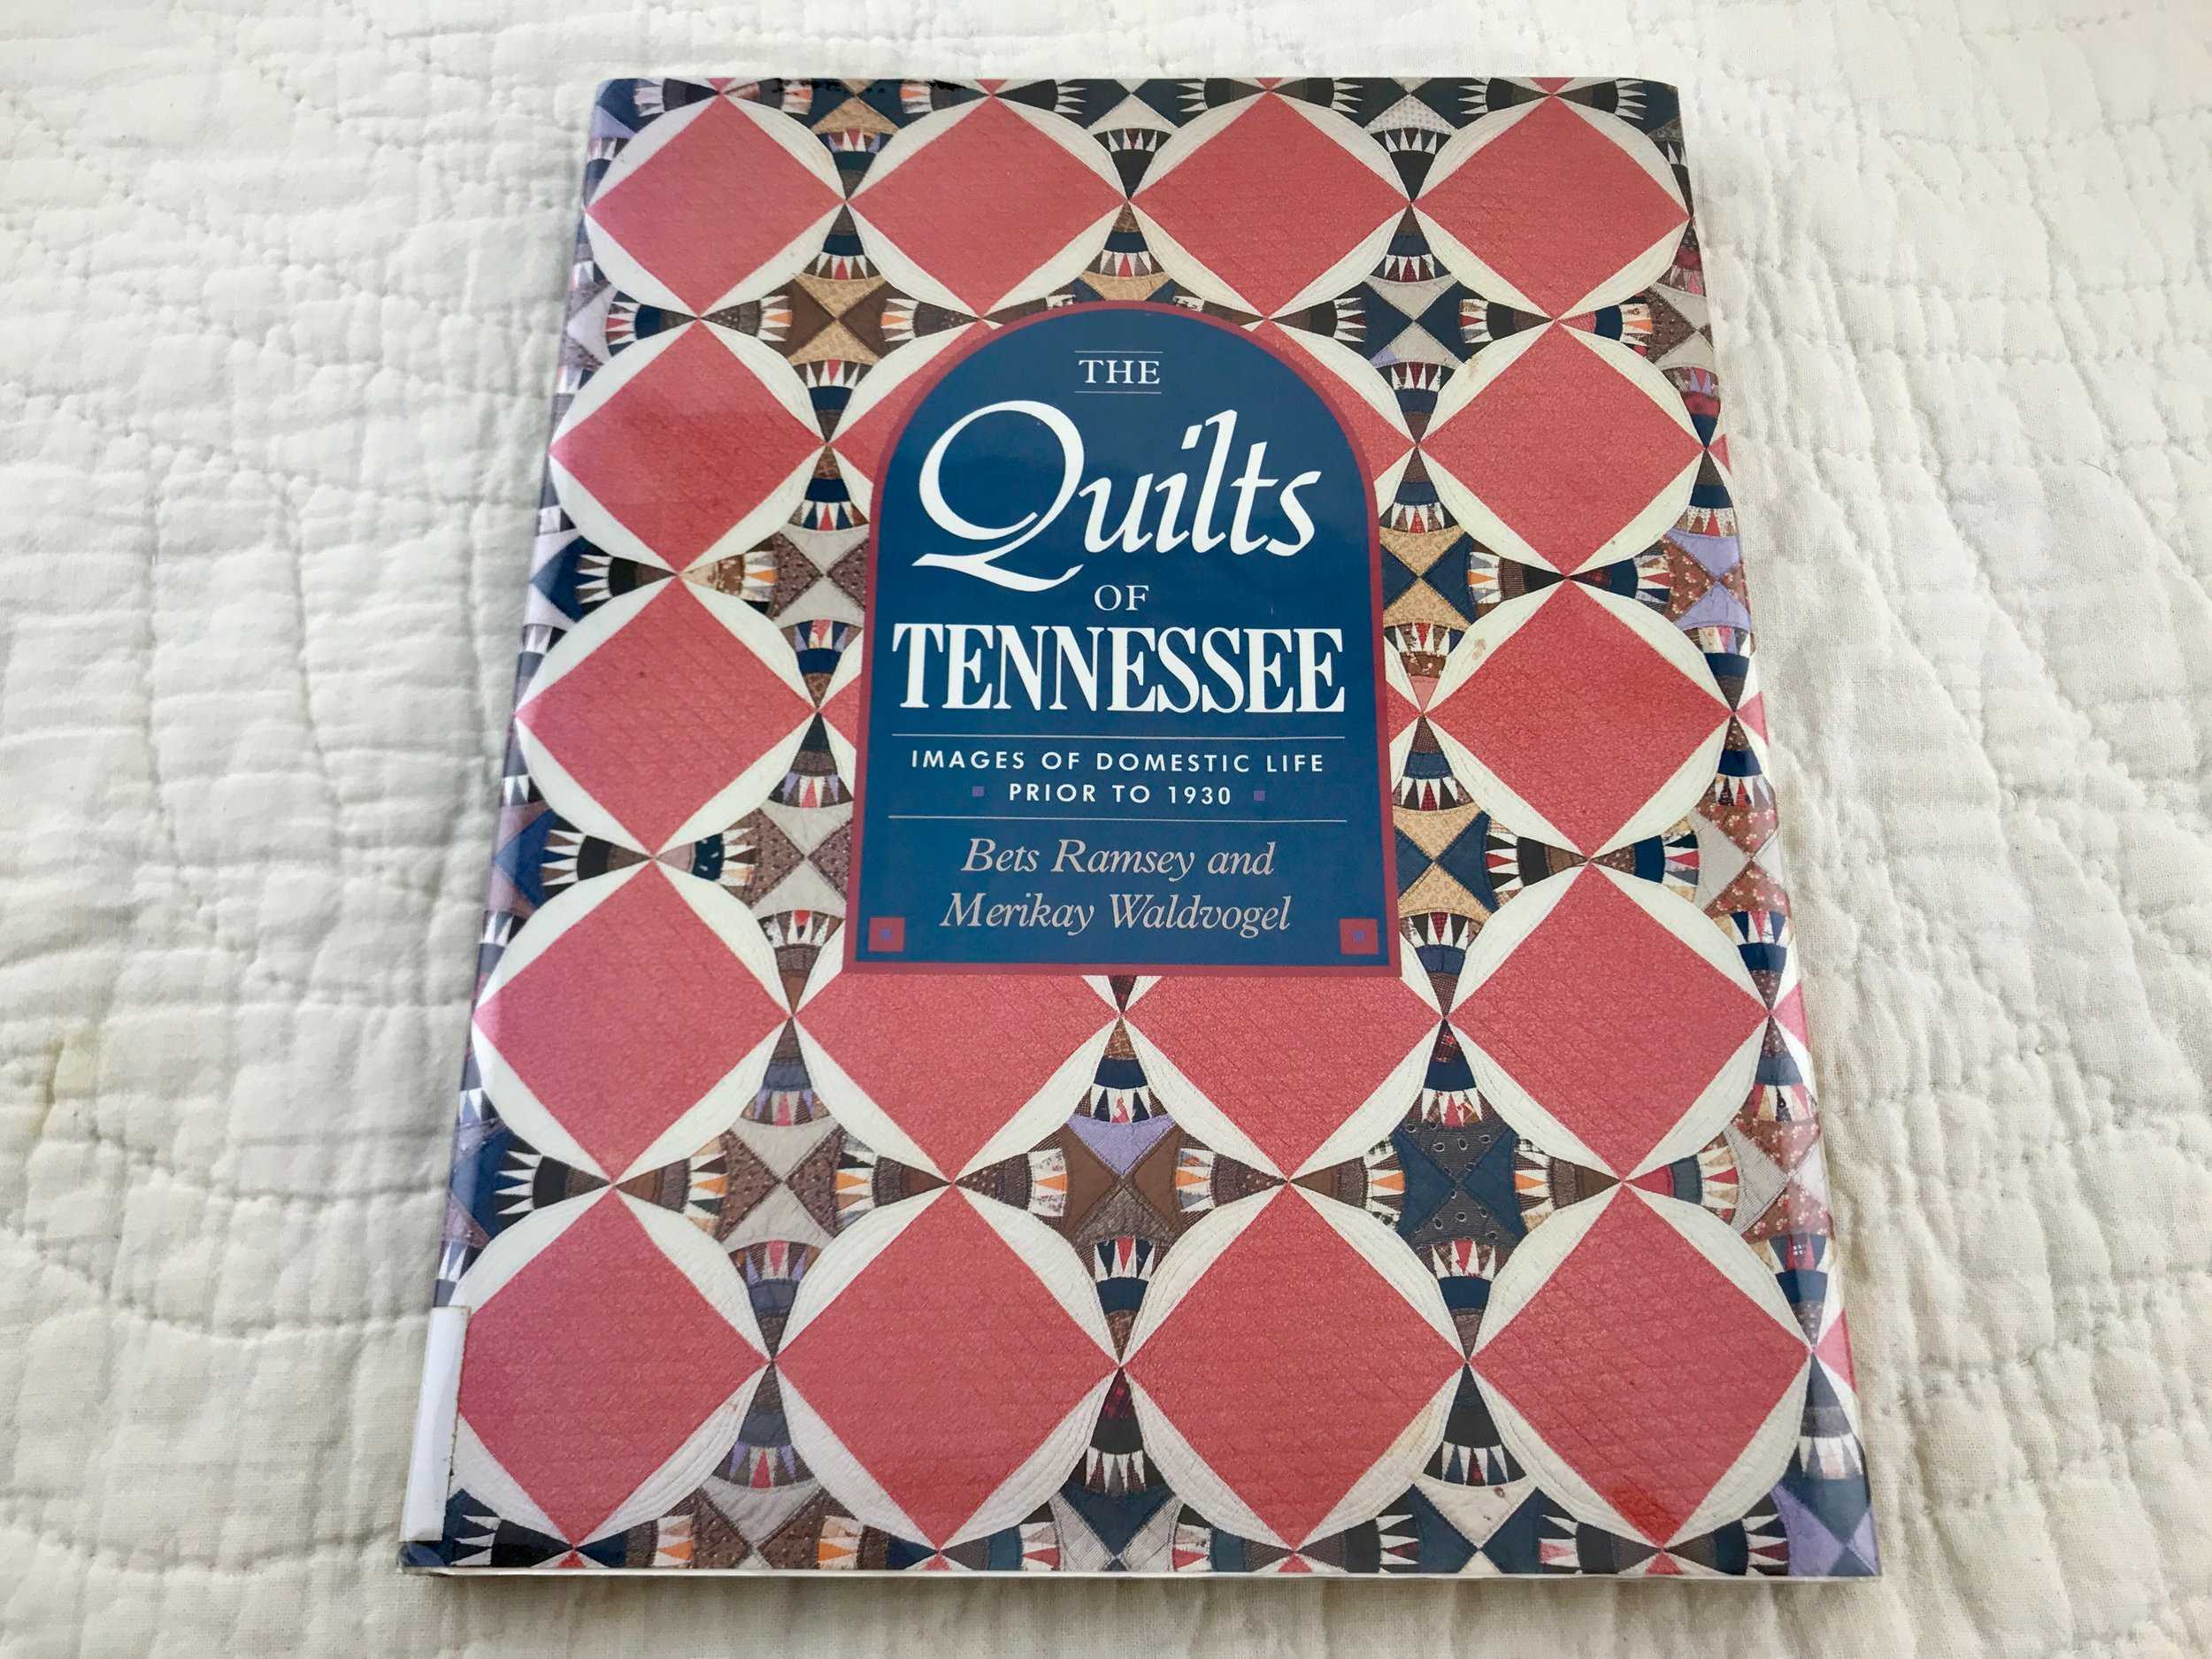 Our modern basket quilt design was inspired by an antique quilt in this book.